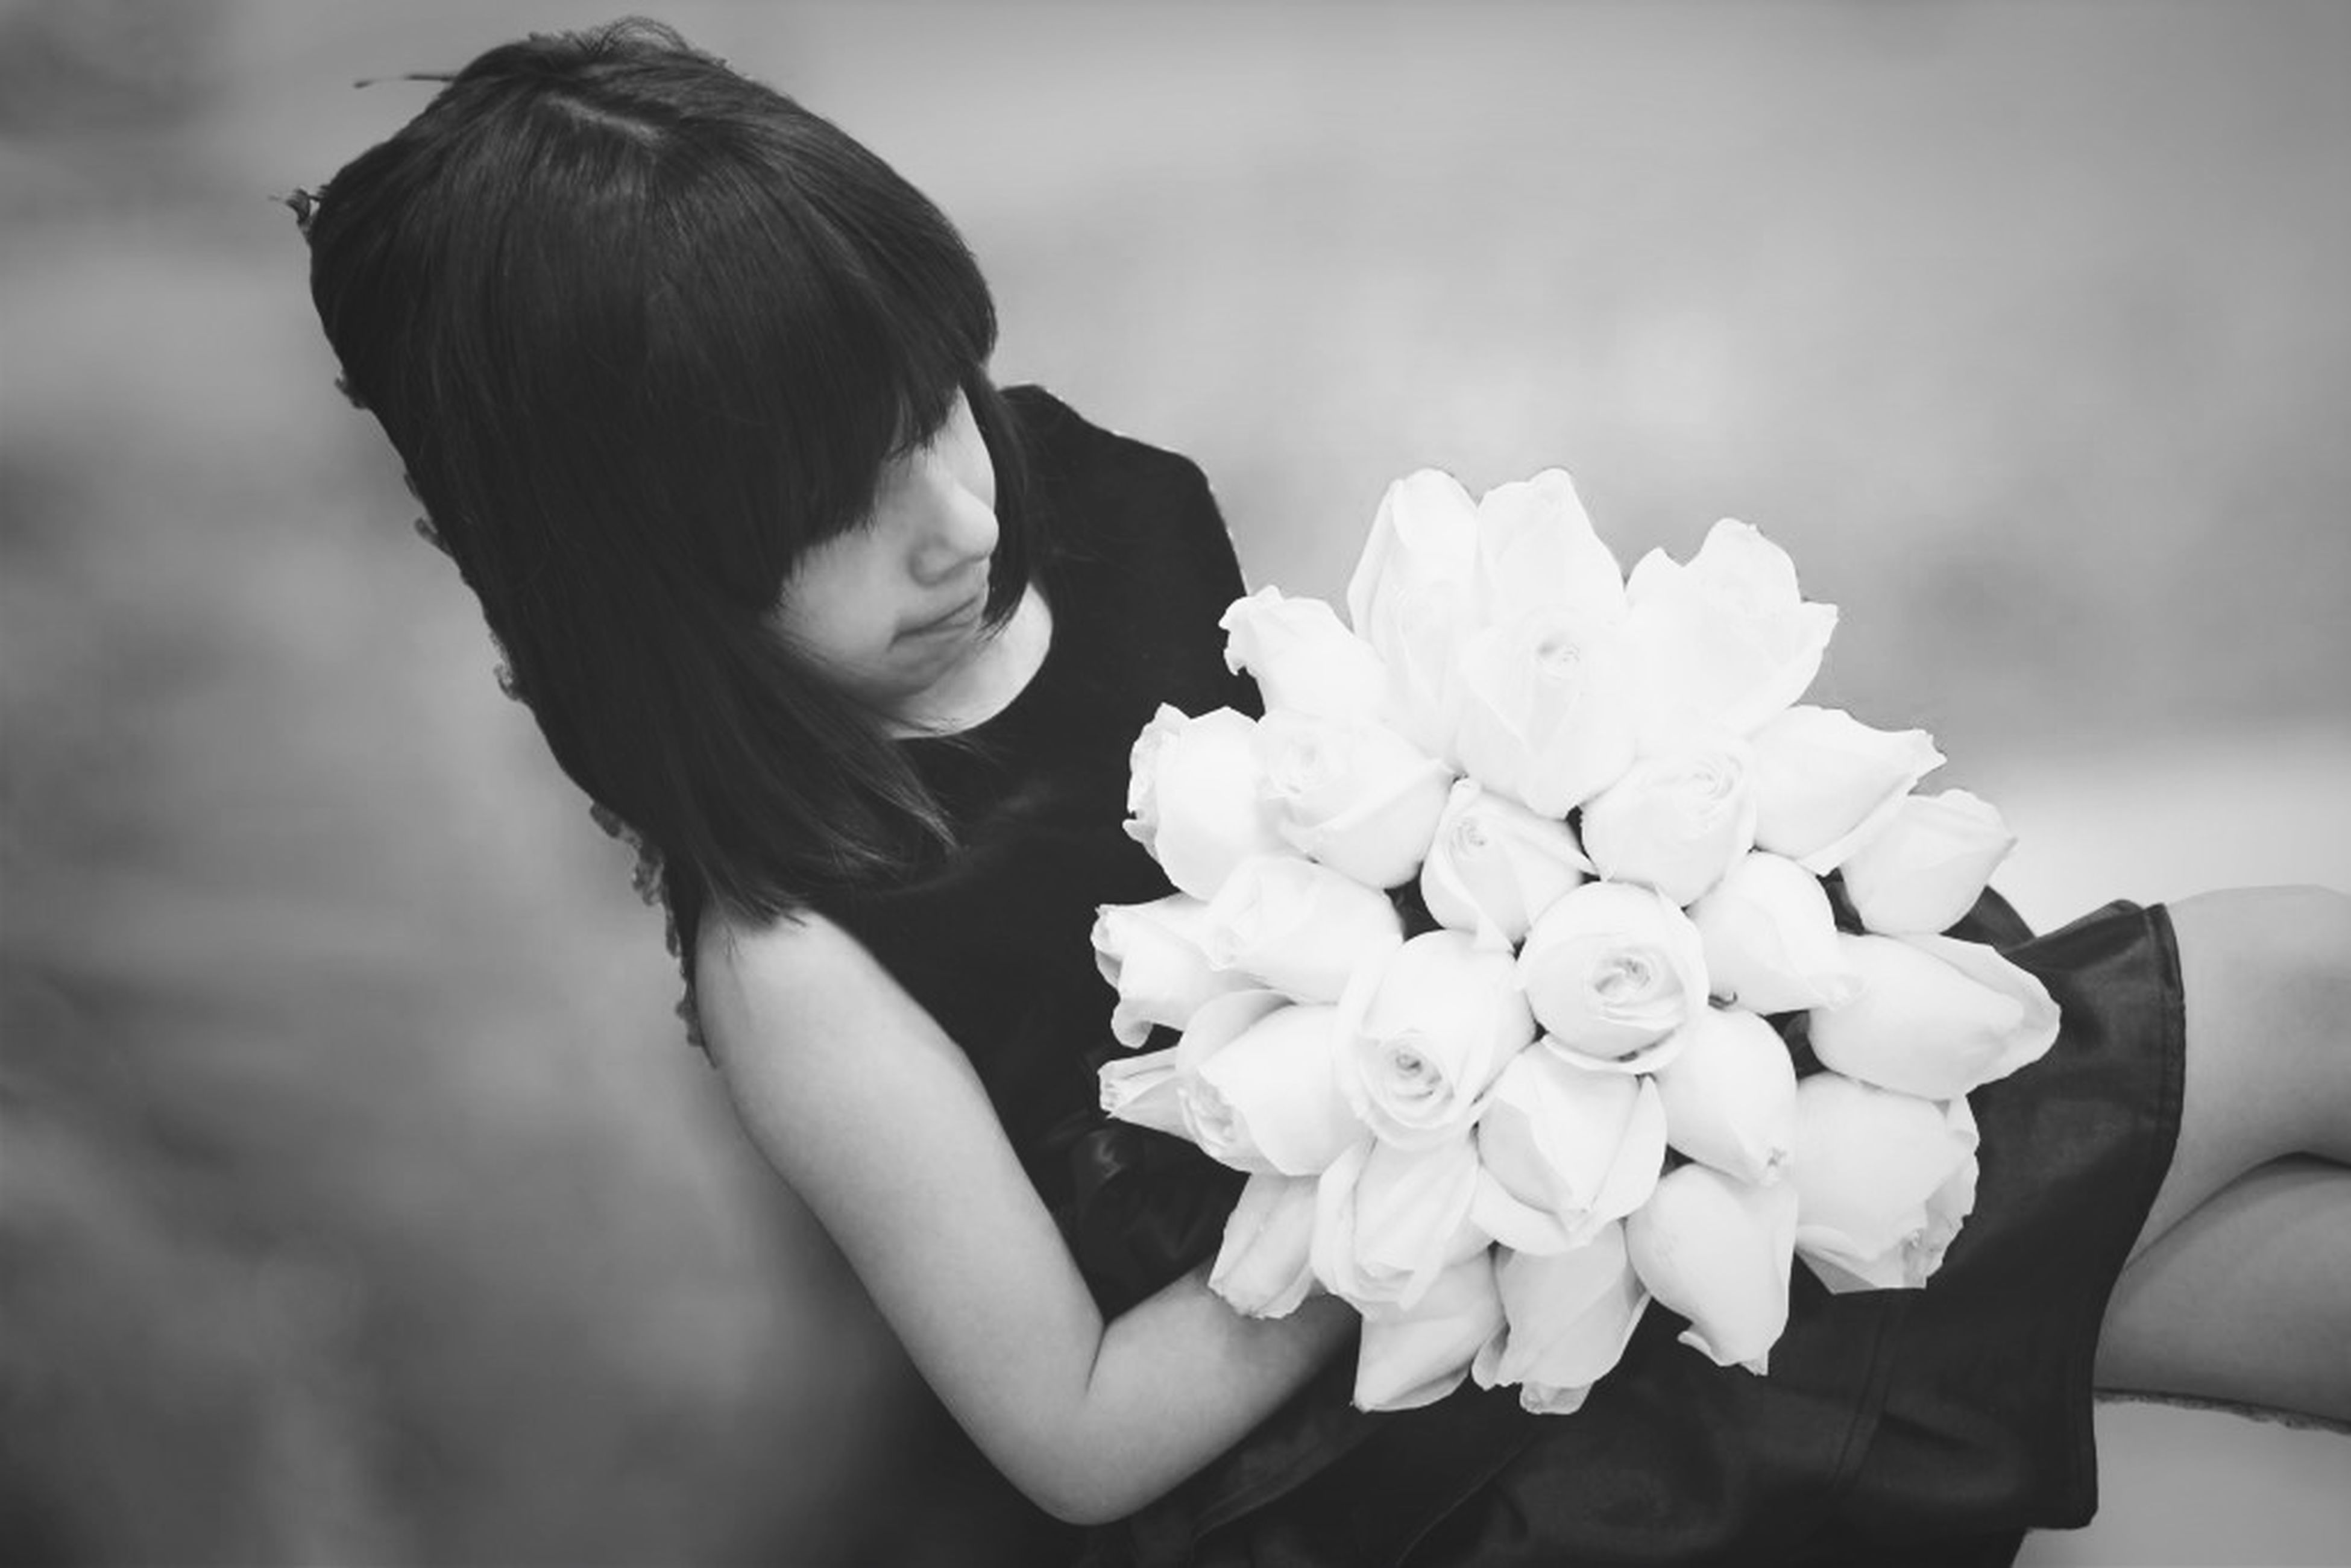 flower, lifestyles, holding, focus on foreground, fragility, flower head, leisure activity, freshness, person, petal, young women, long hair, beauty in nature, close-up, young adult, nature, standing